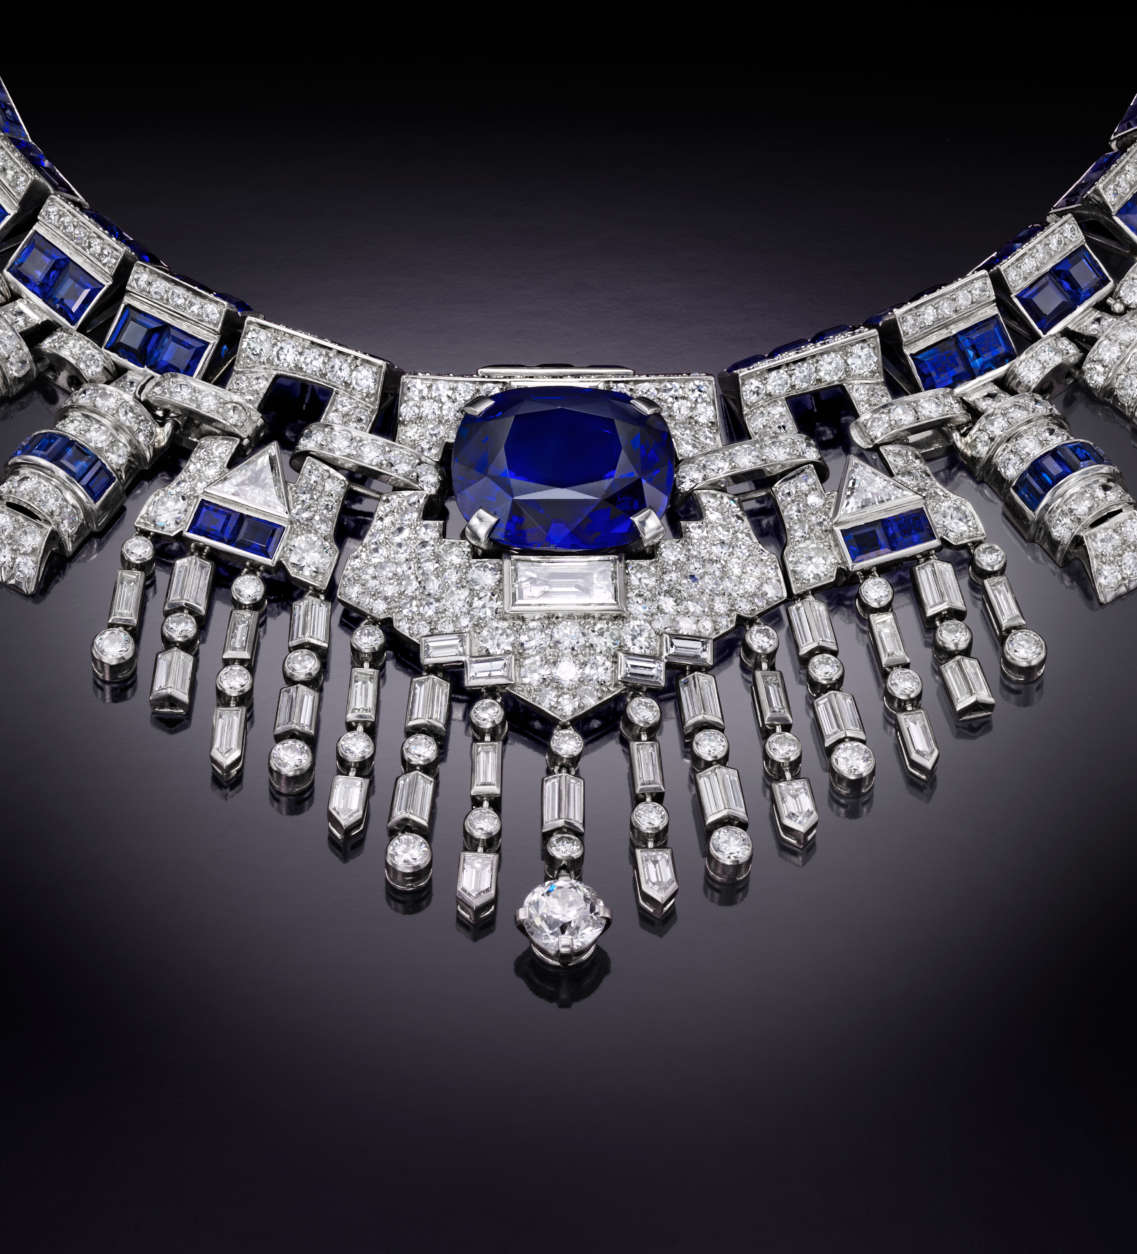 Exquisite gems, jewels from Cartier, Harry Winston on